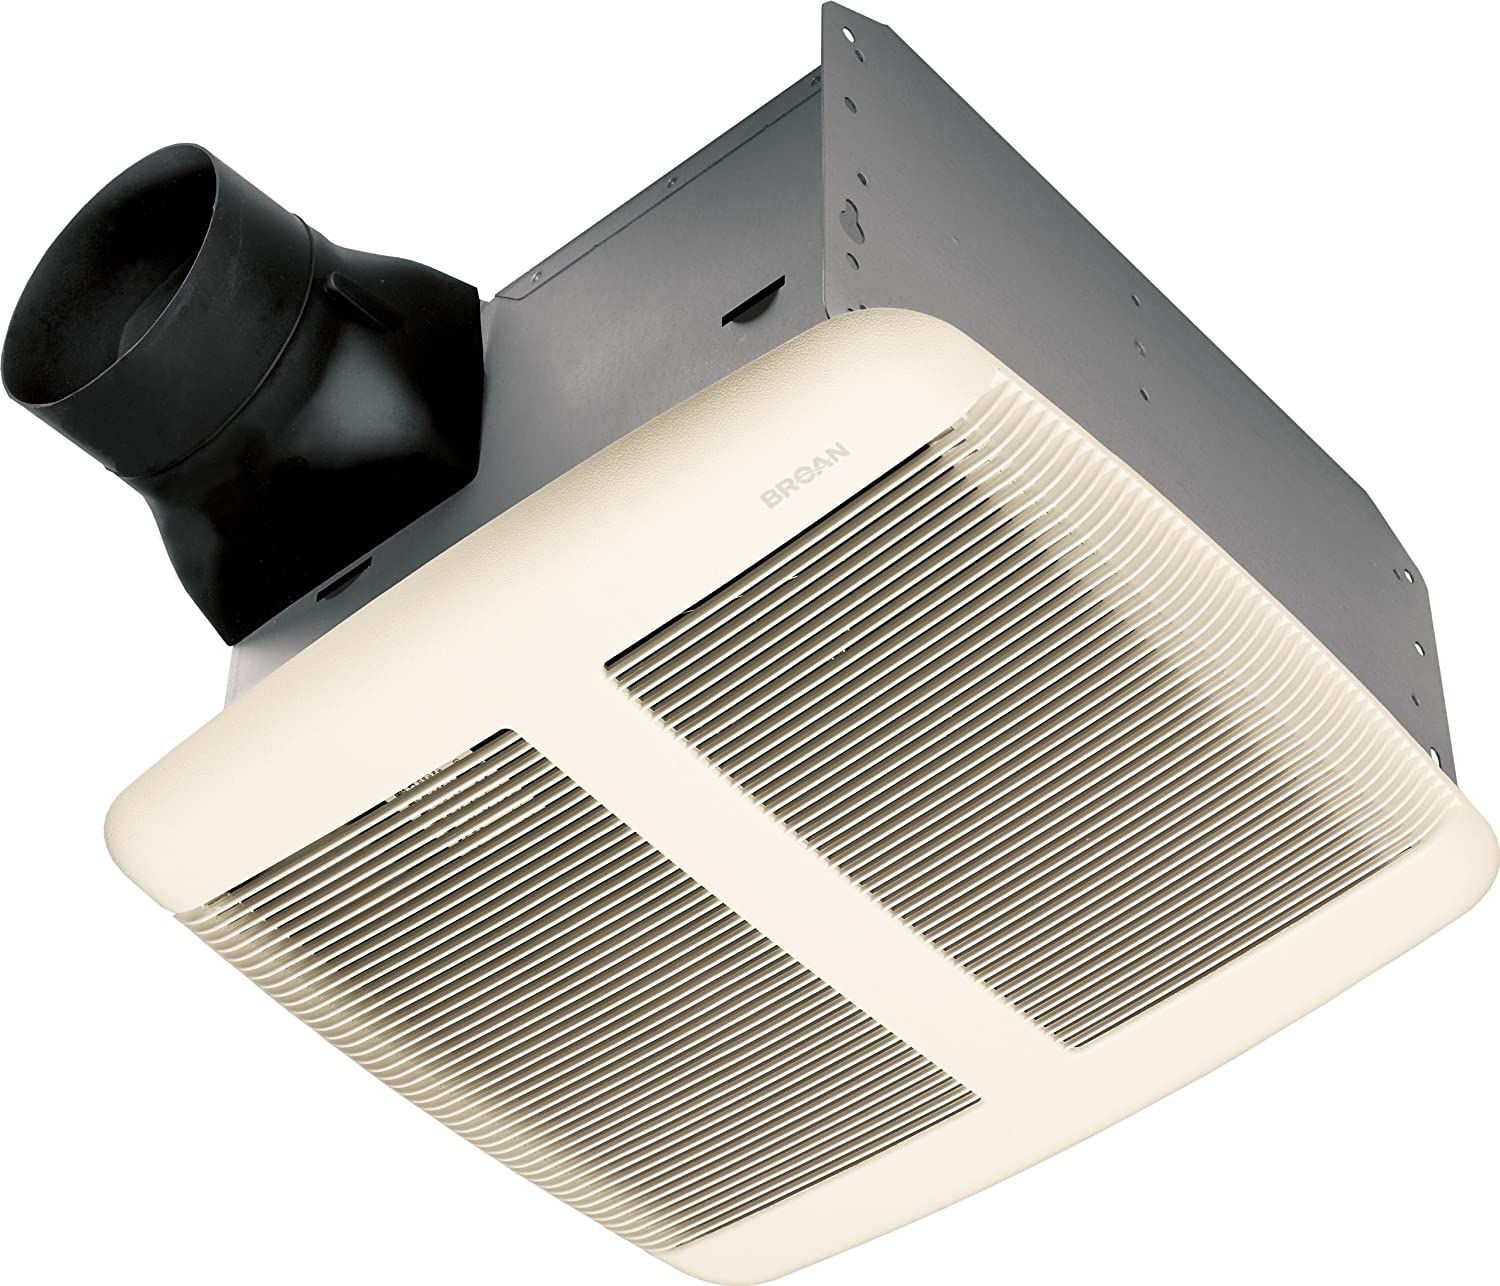 Modern bathroom vent fan - Broan Qtre090c 90 Cfm Ultra Silent Energy Star Qualified Fan Hand Tools Amazon Canada